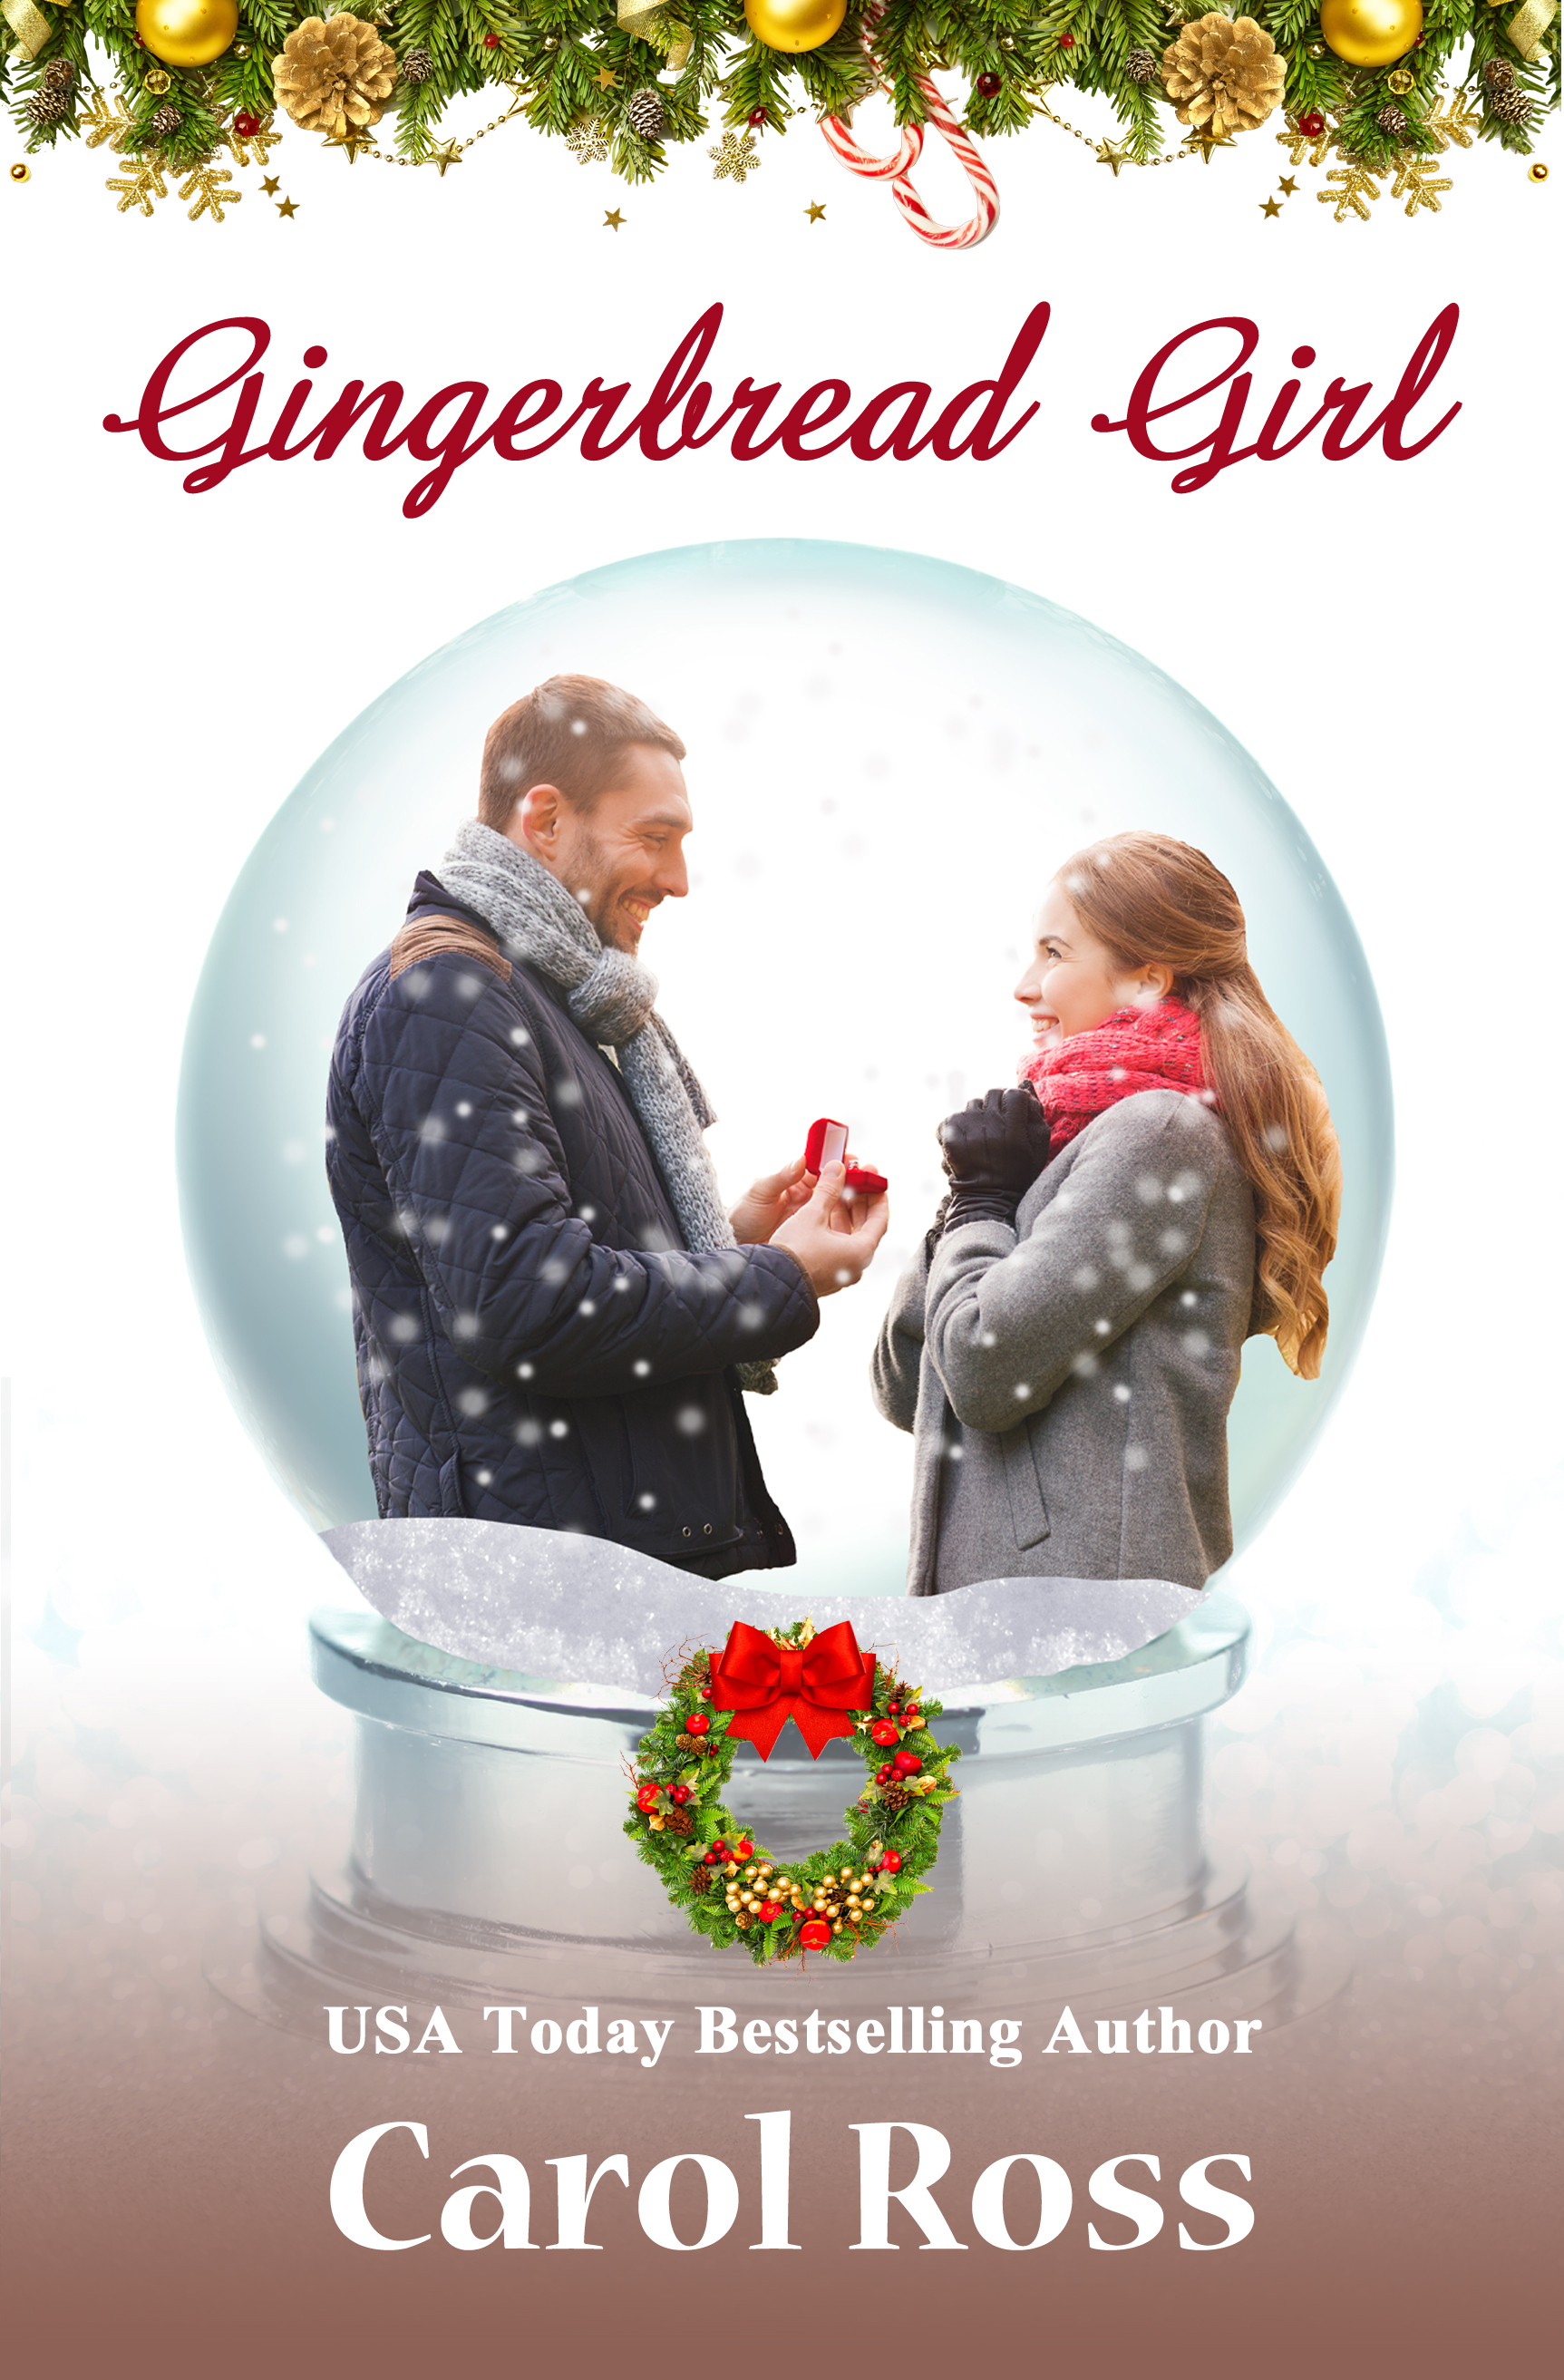 Gingerbread Girl by Carol Ross Heartwarming Holiday Wishes Christmas